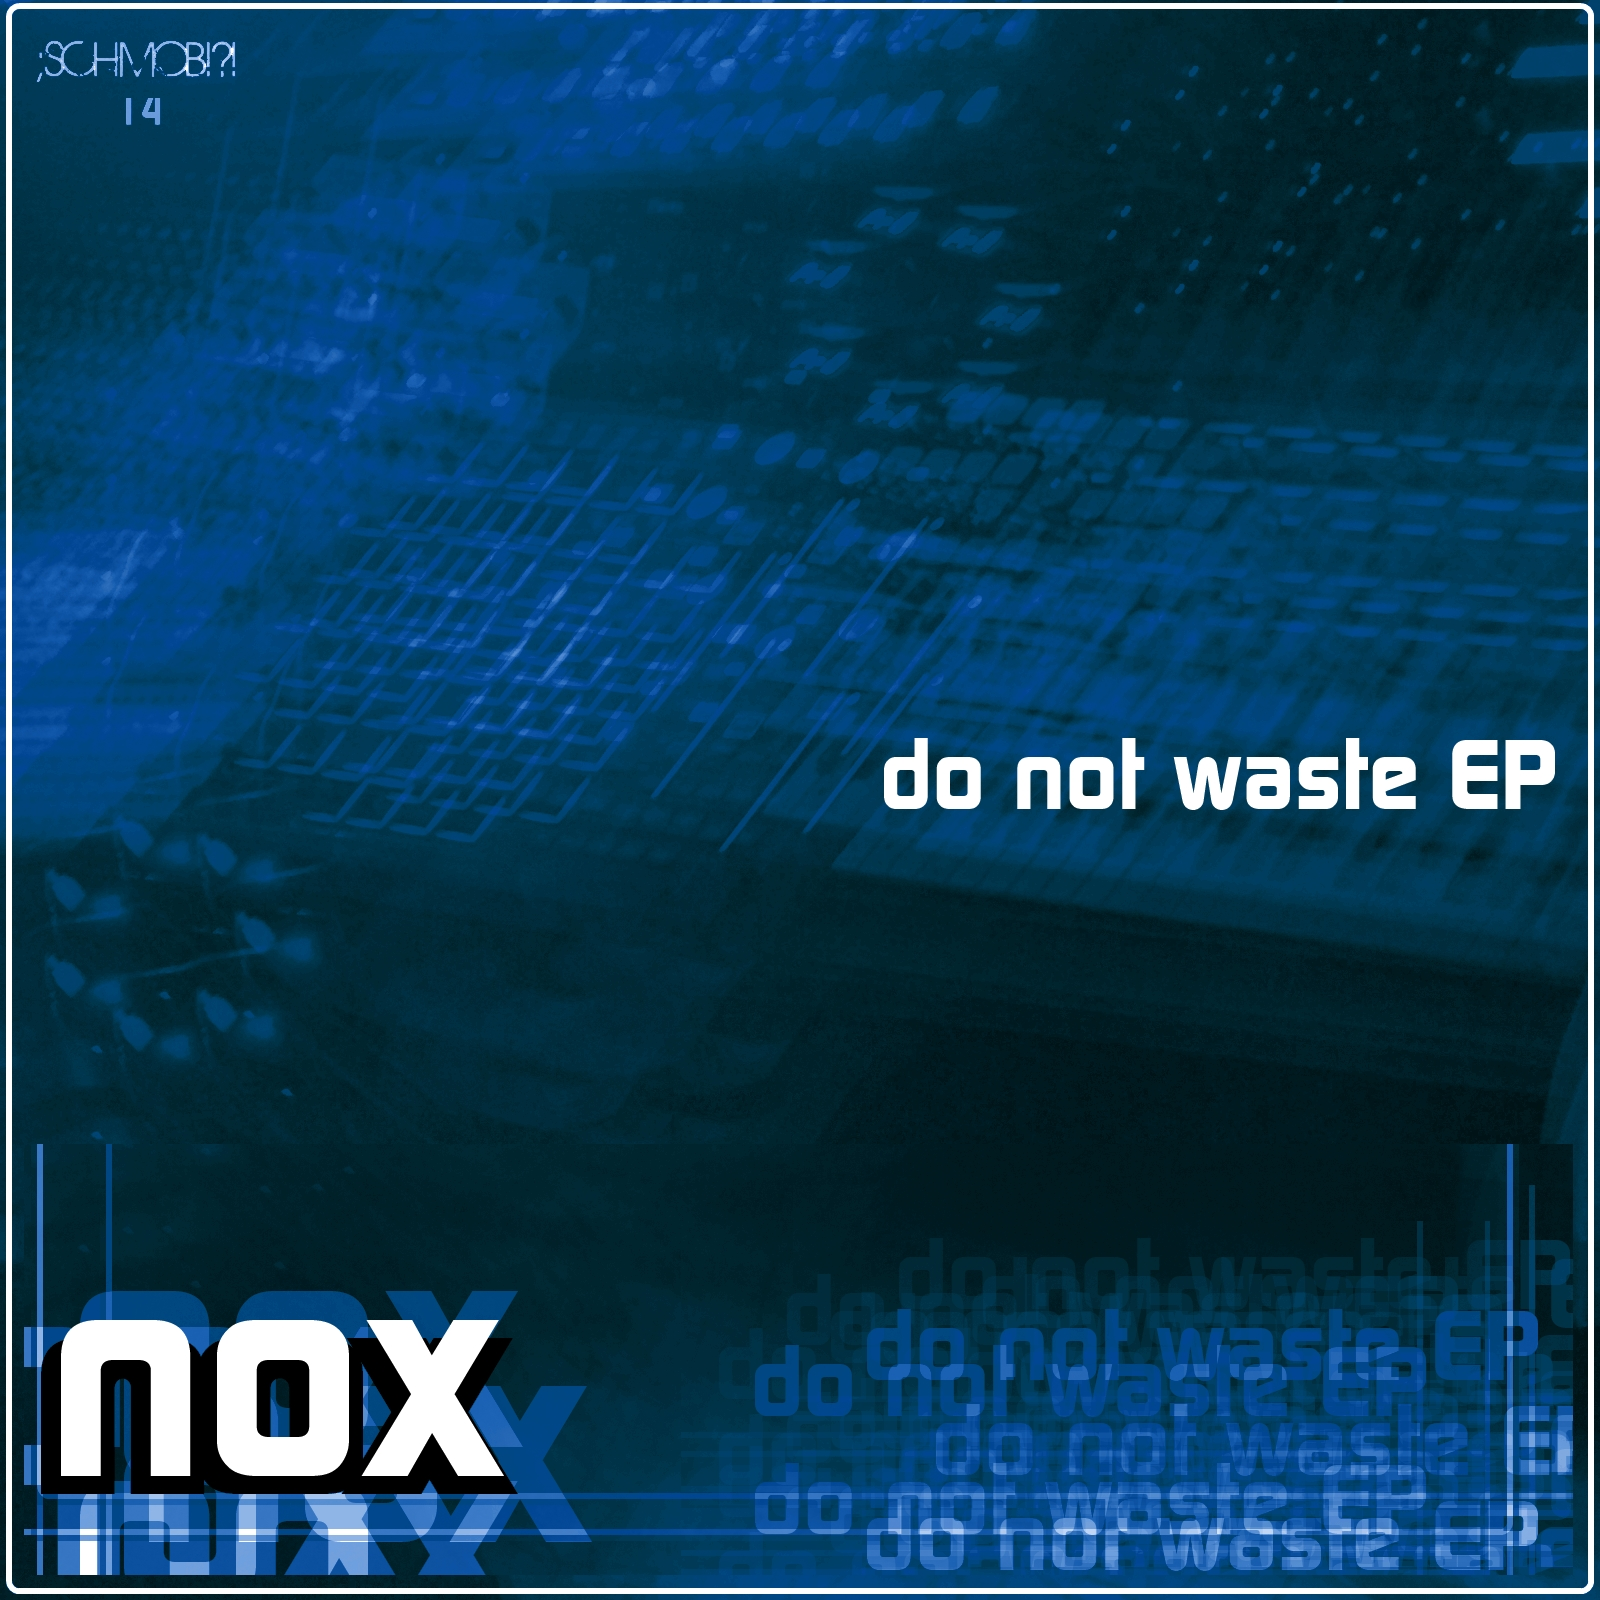 Nox – Do not waste EP